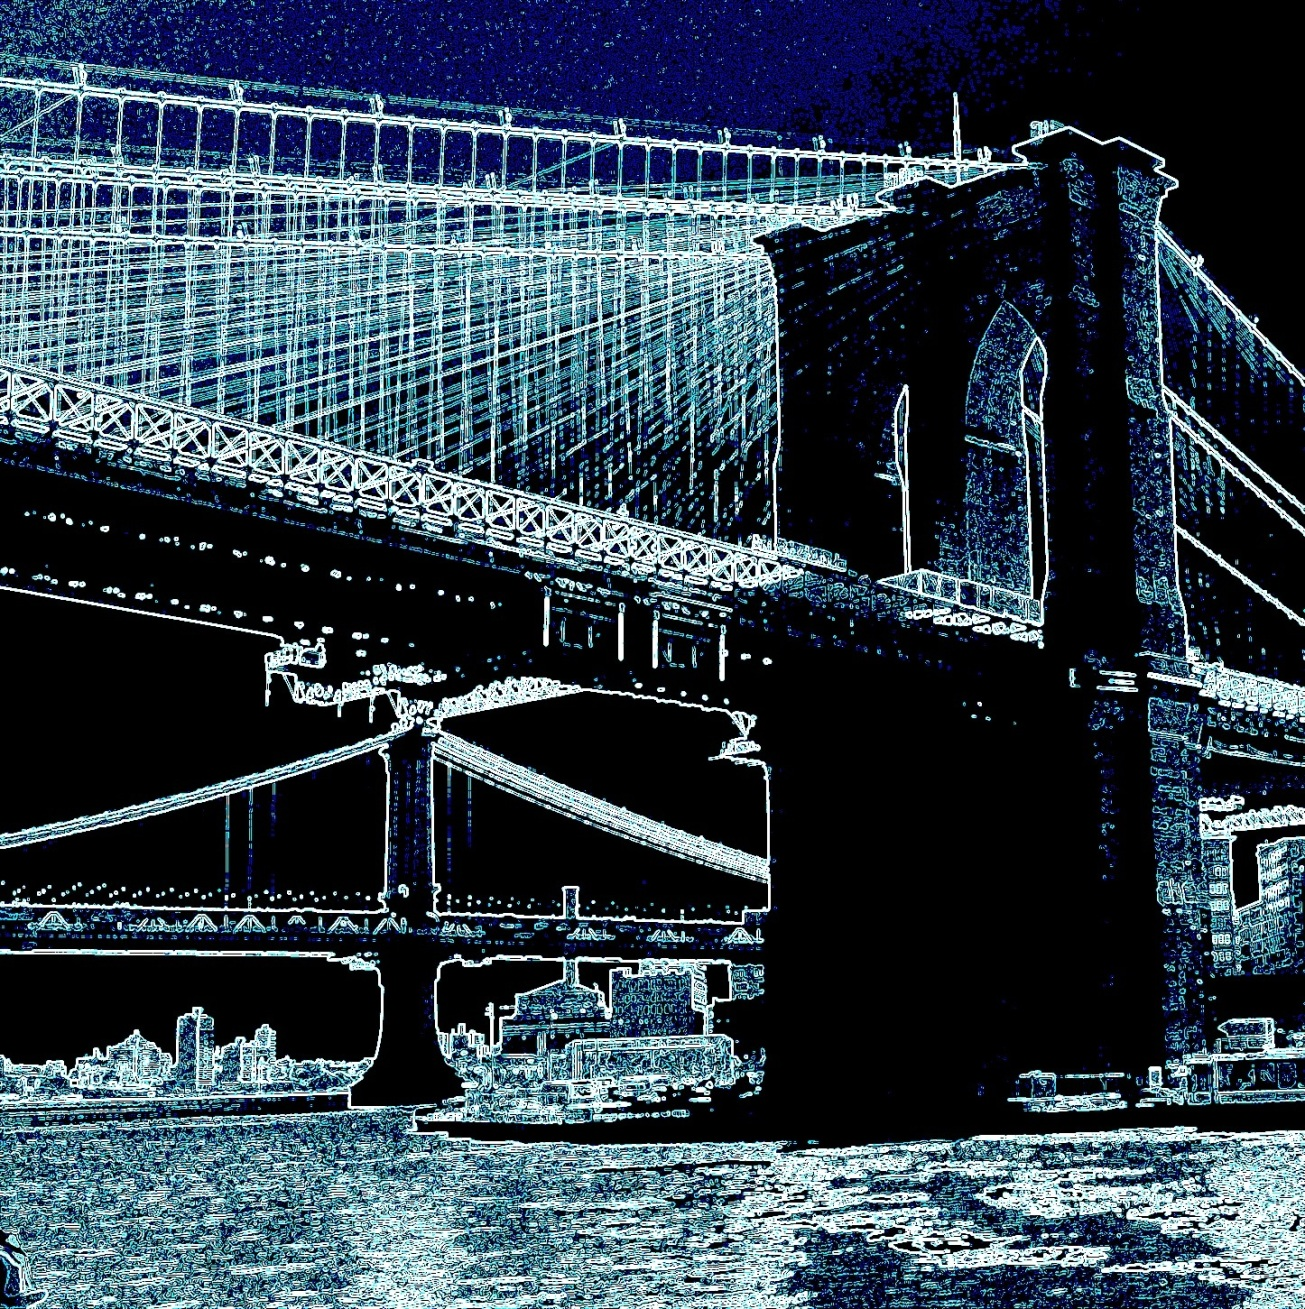 Image 38 brooklyn bridge gall